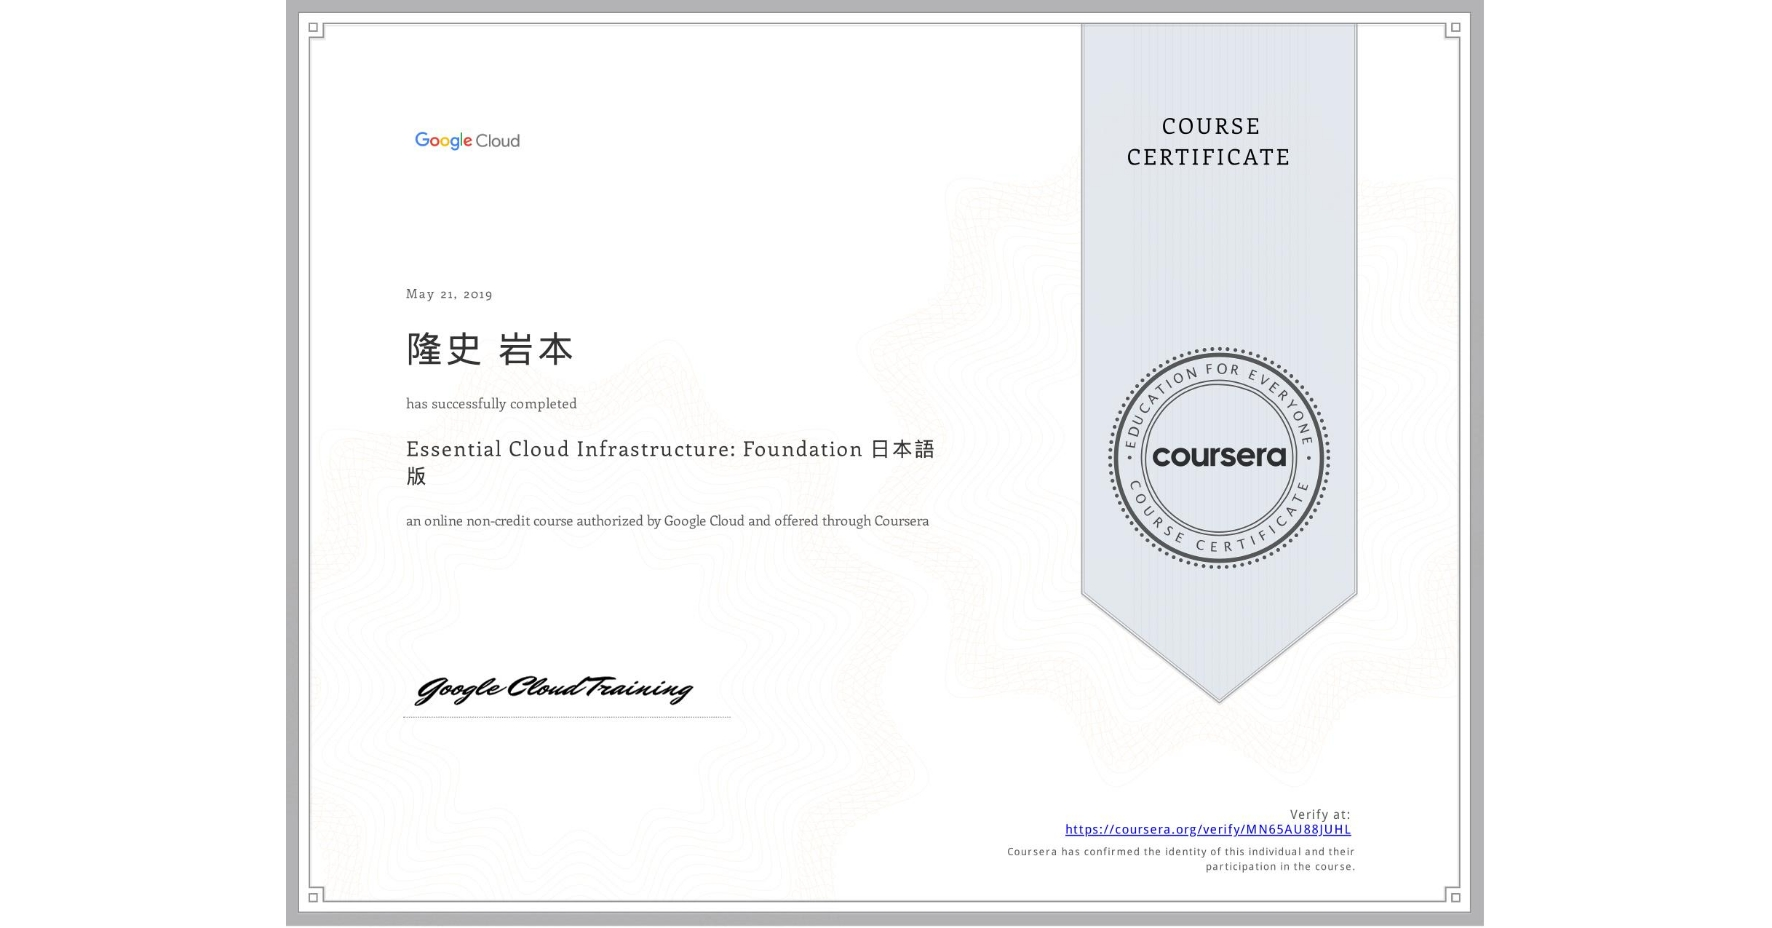 View certificate for 隆史 岩本, Essential Cloud Infrastructure: Foundation 日本語版, an online non-credit course authorized by Google Cloud and offered through Coursera